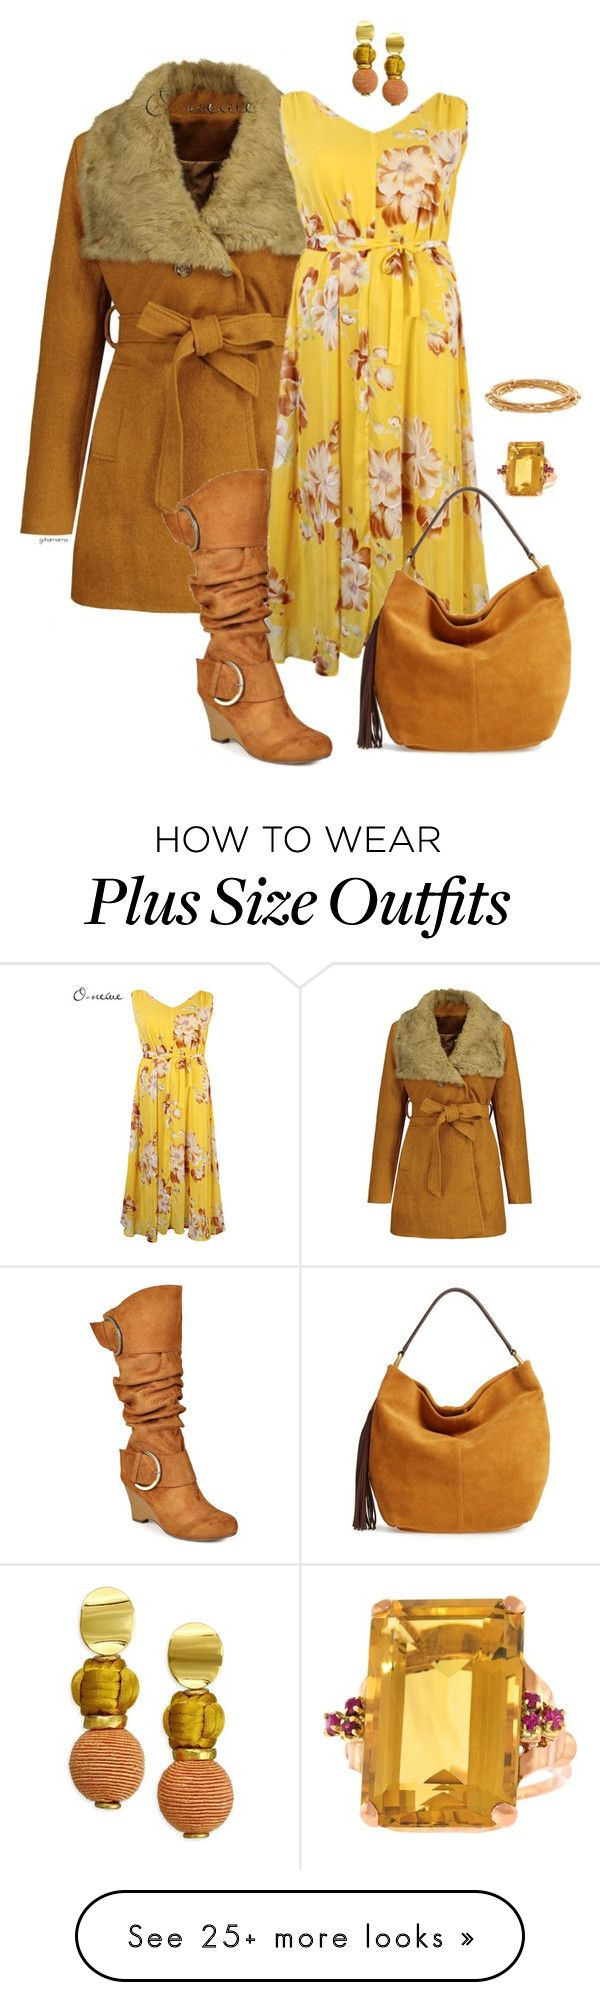 """""""Pushing spring- plus size"""" by gchamama on Polyvore featuring O-Newe, Journee Collection, HOBO, Lizzie Fortunato and Apt. 9"""